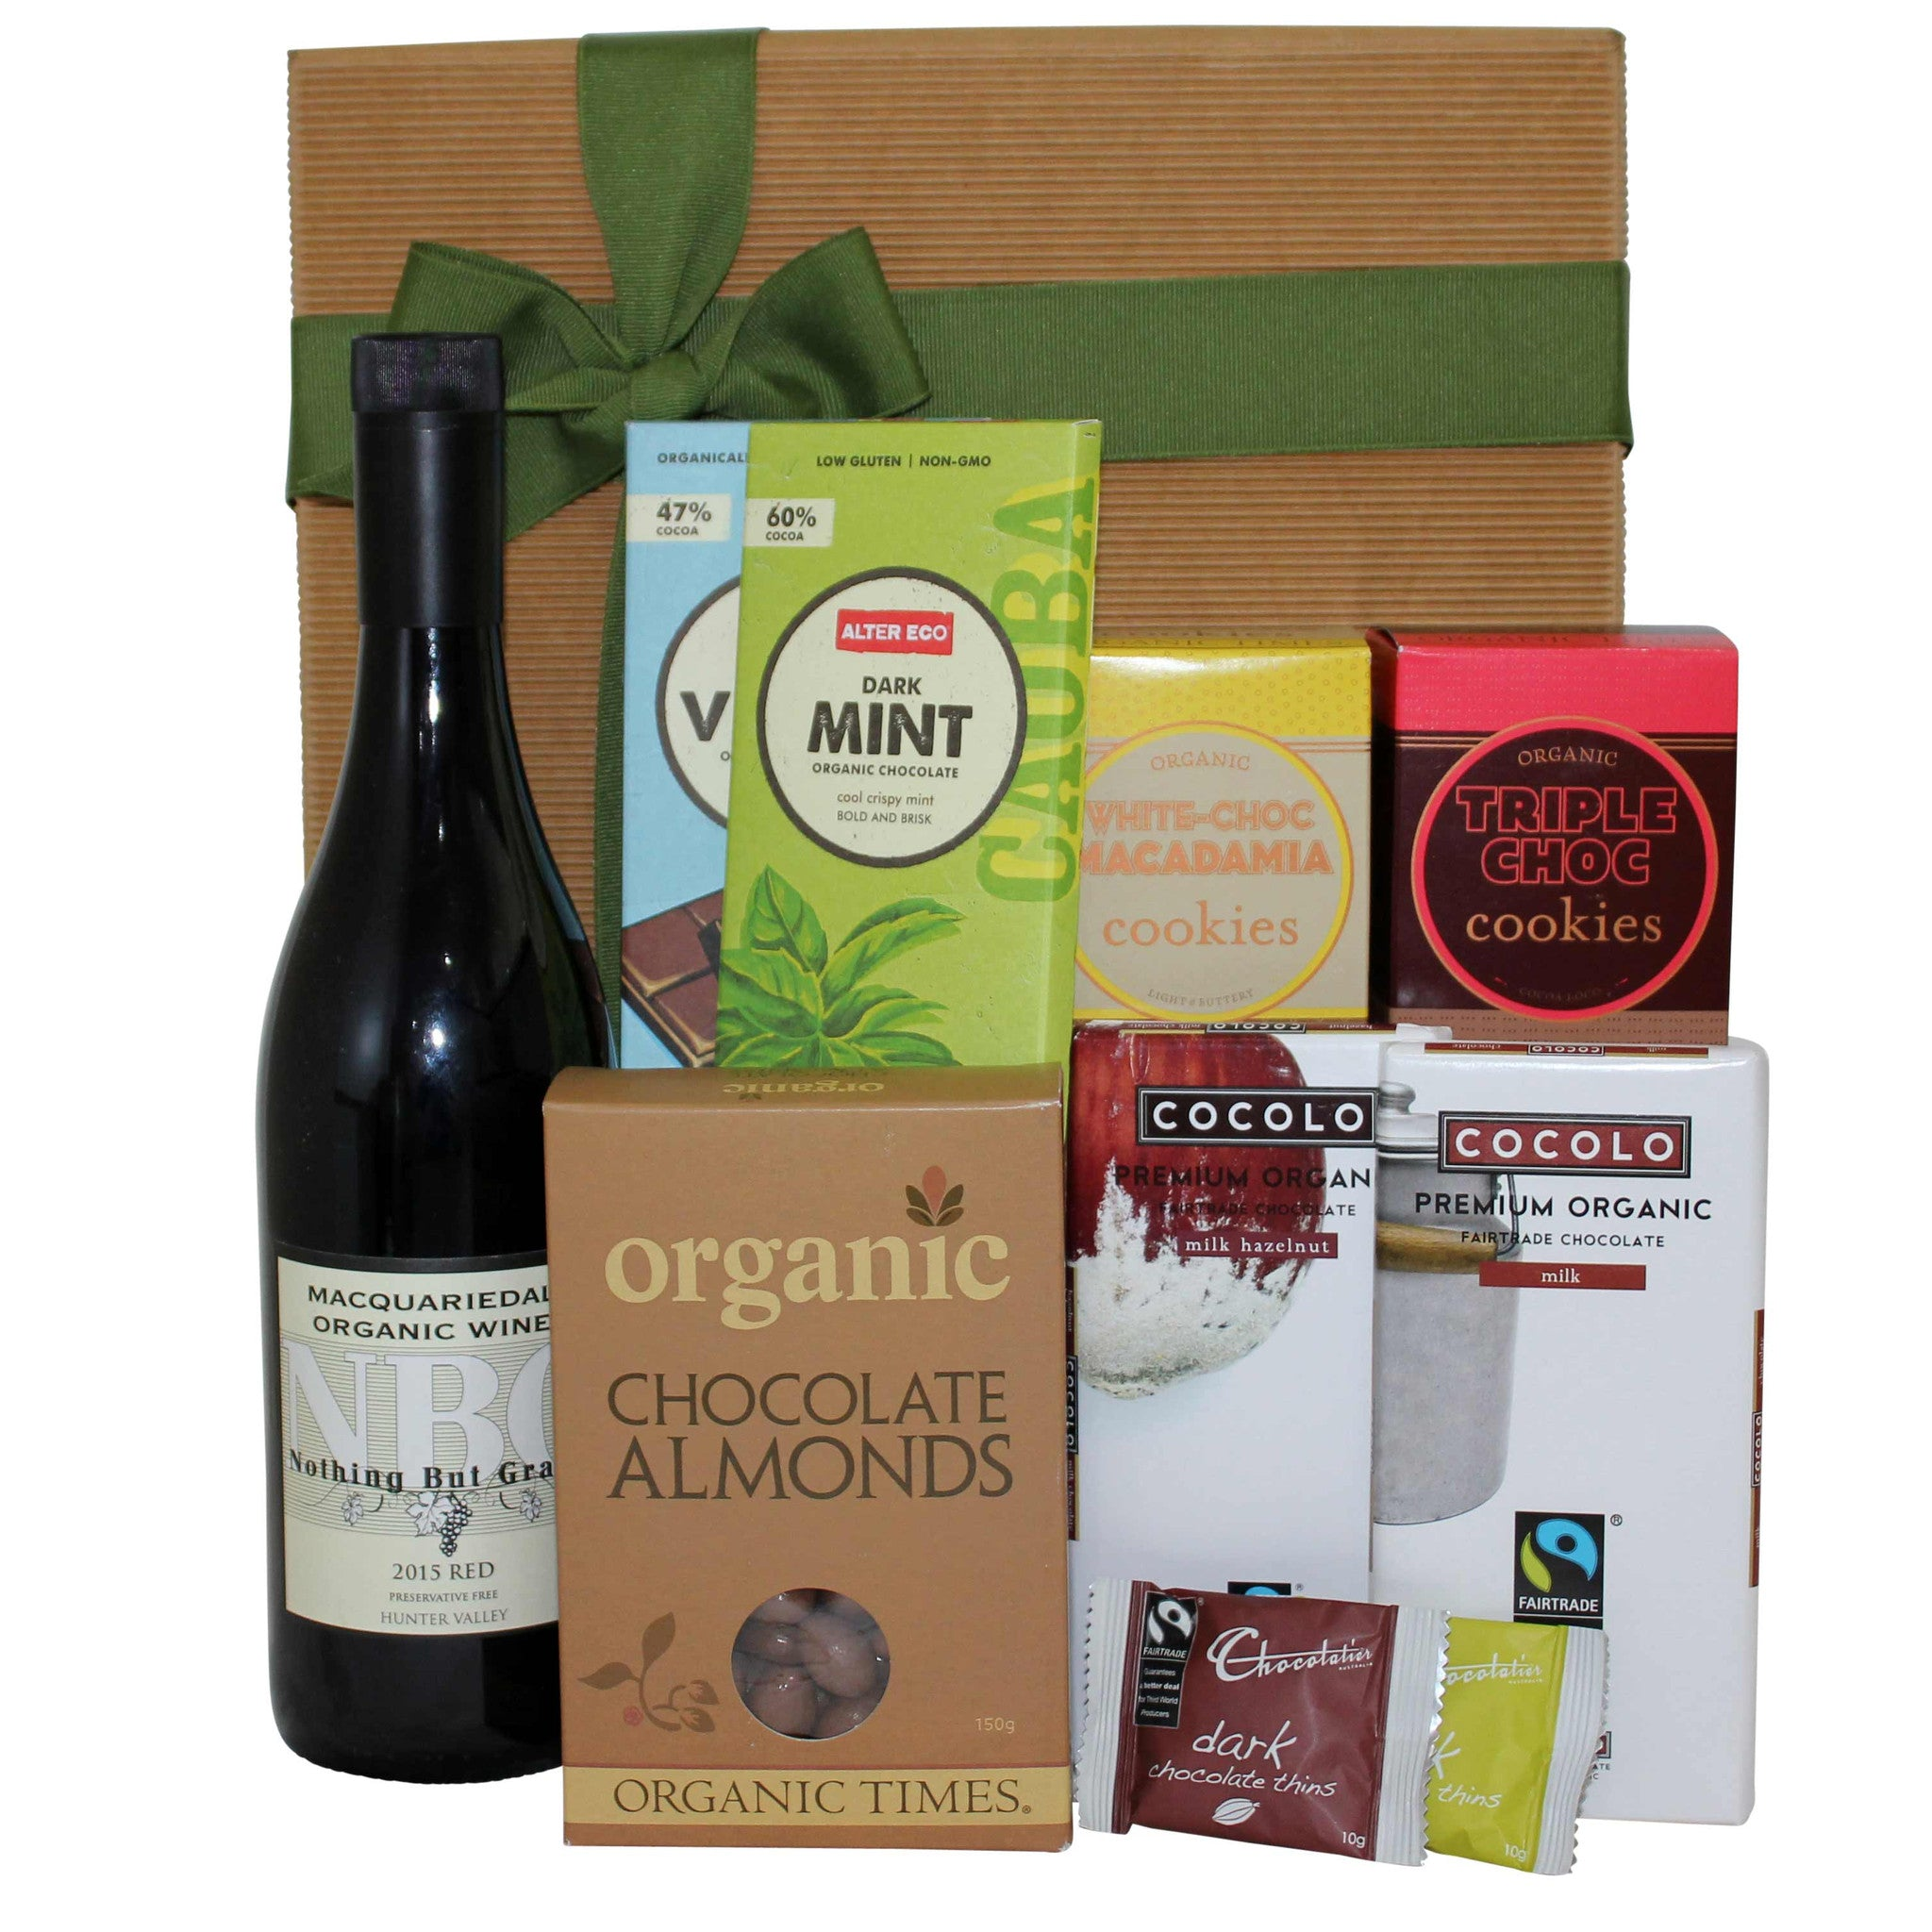 Gourmet Chocolate and Wine Hamper - Naturally Gifted